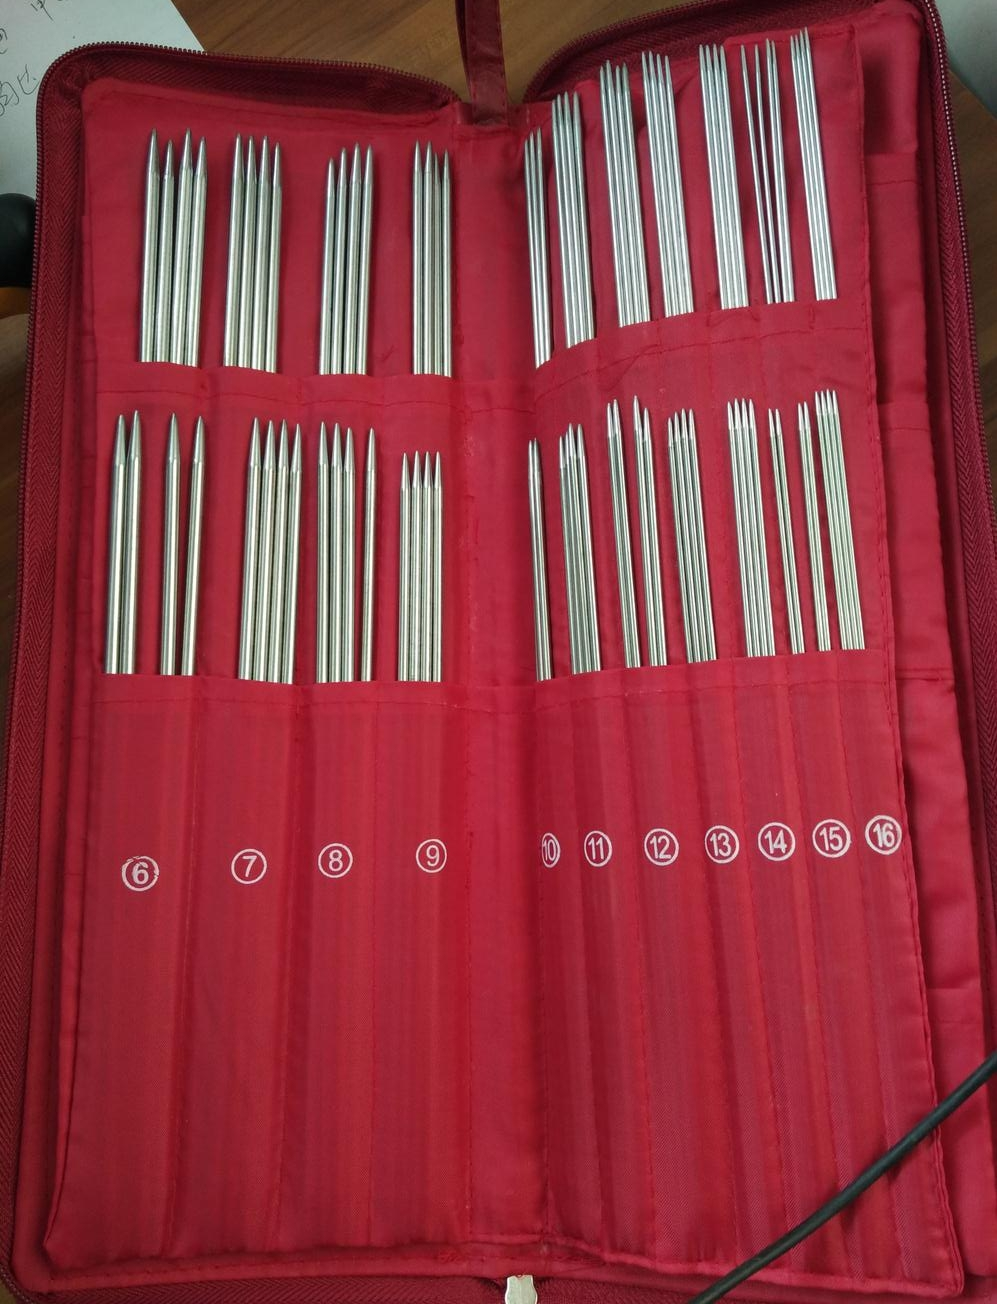 Knitting Needle professional DIY 121 pcs hand knitting needles set knitting weaving tools set Stainless Steel